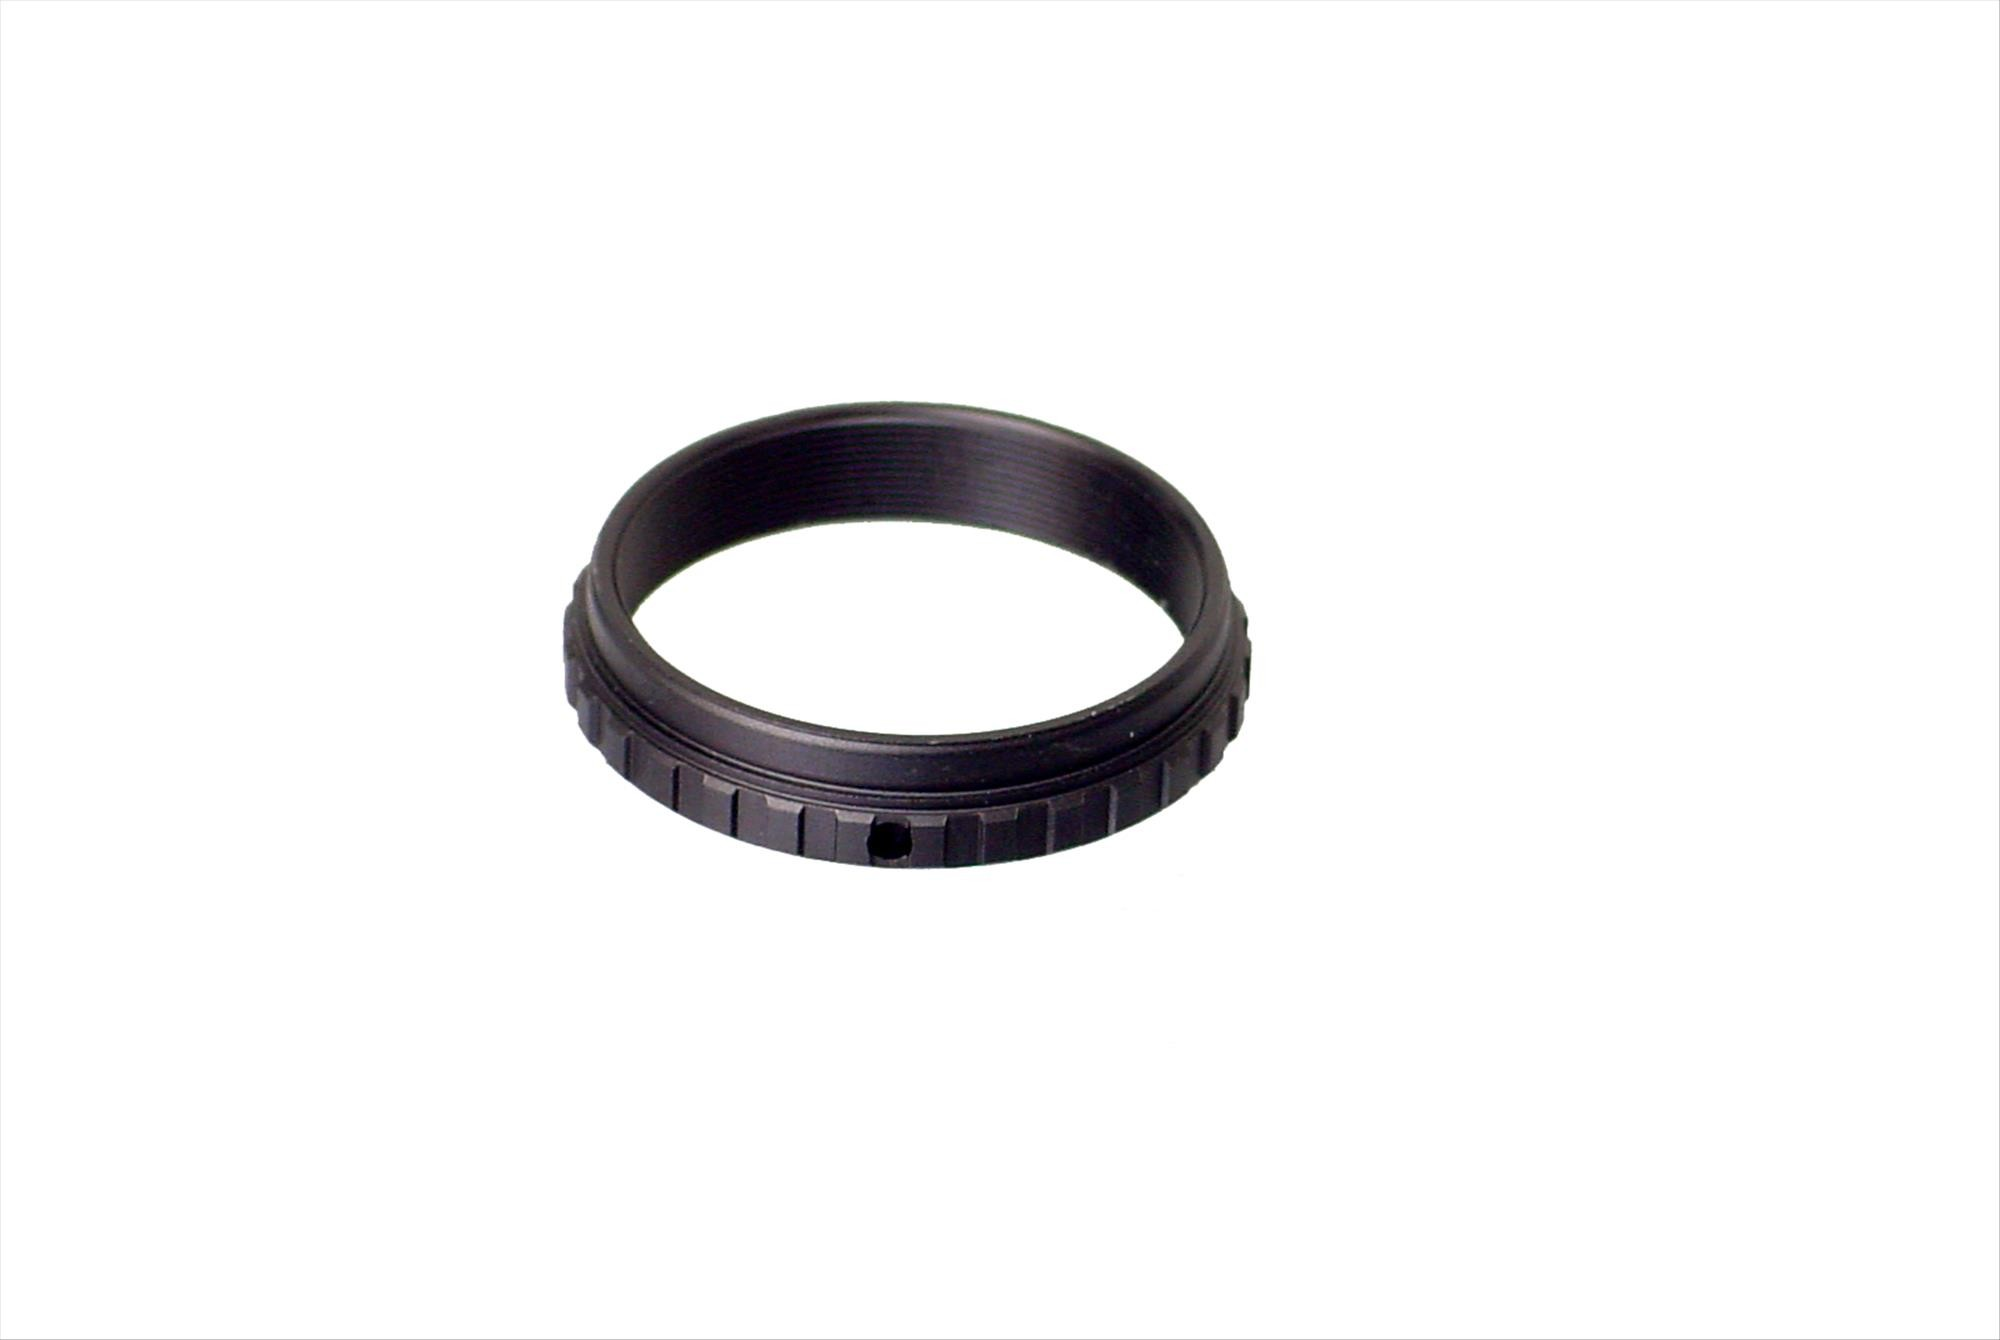 Baader T-2 Conversion Ring